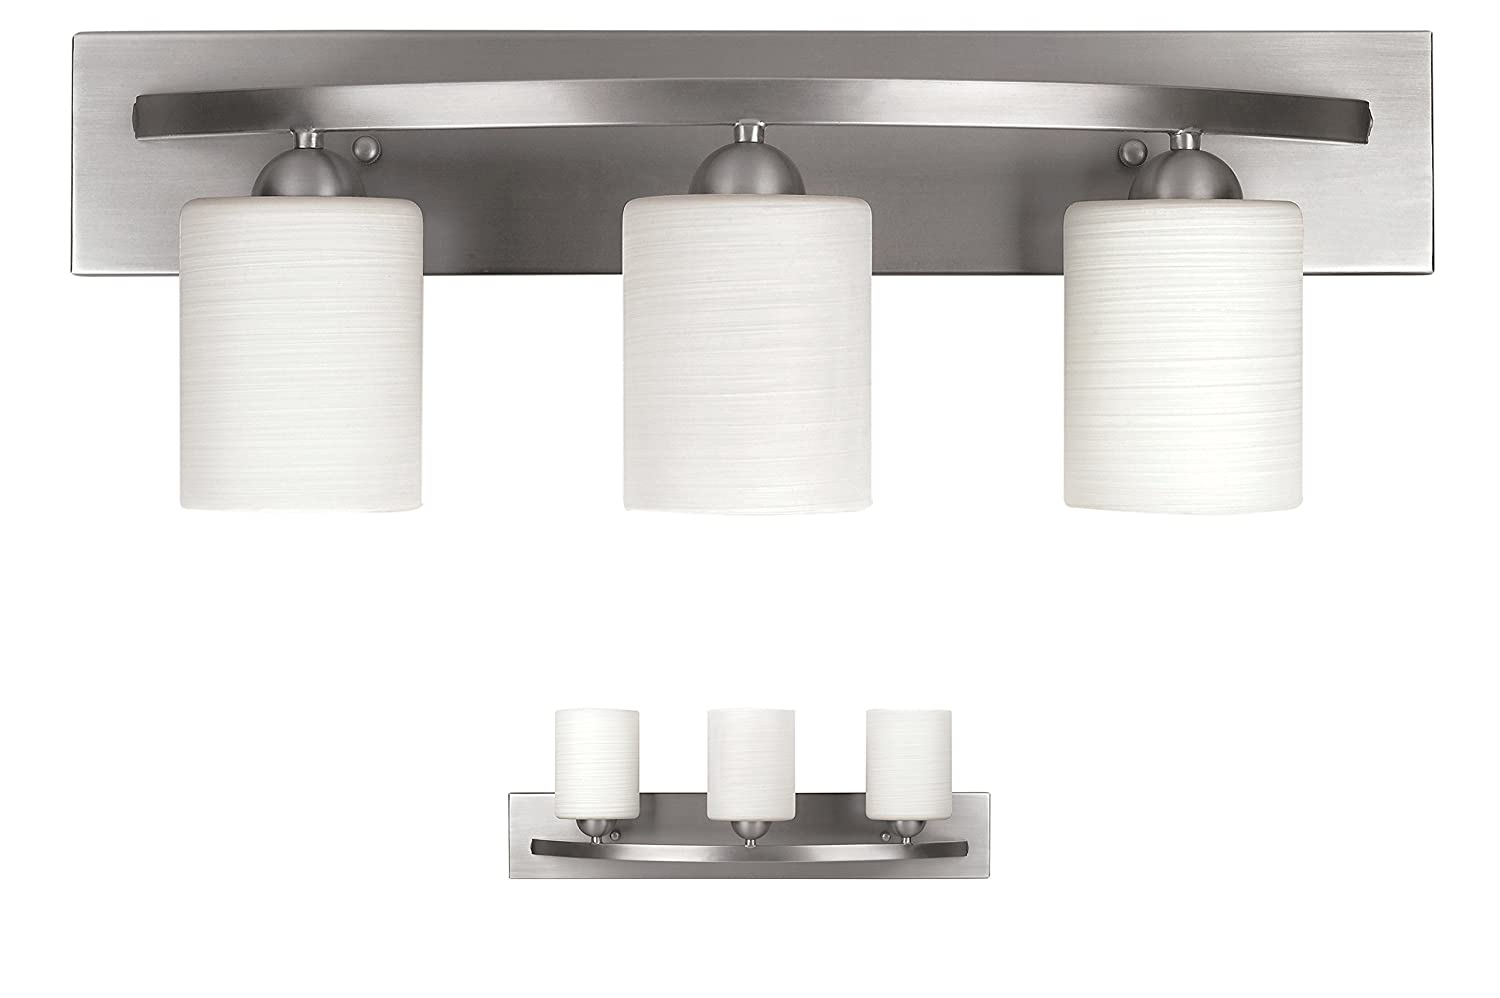 WholesalePlumbing IVL370A03BPT 3 Bulb Vanity Light Fixture Bath Interior  Lighting, Brushed Nickel     Amazon.com